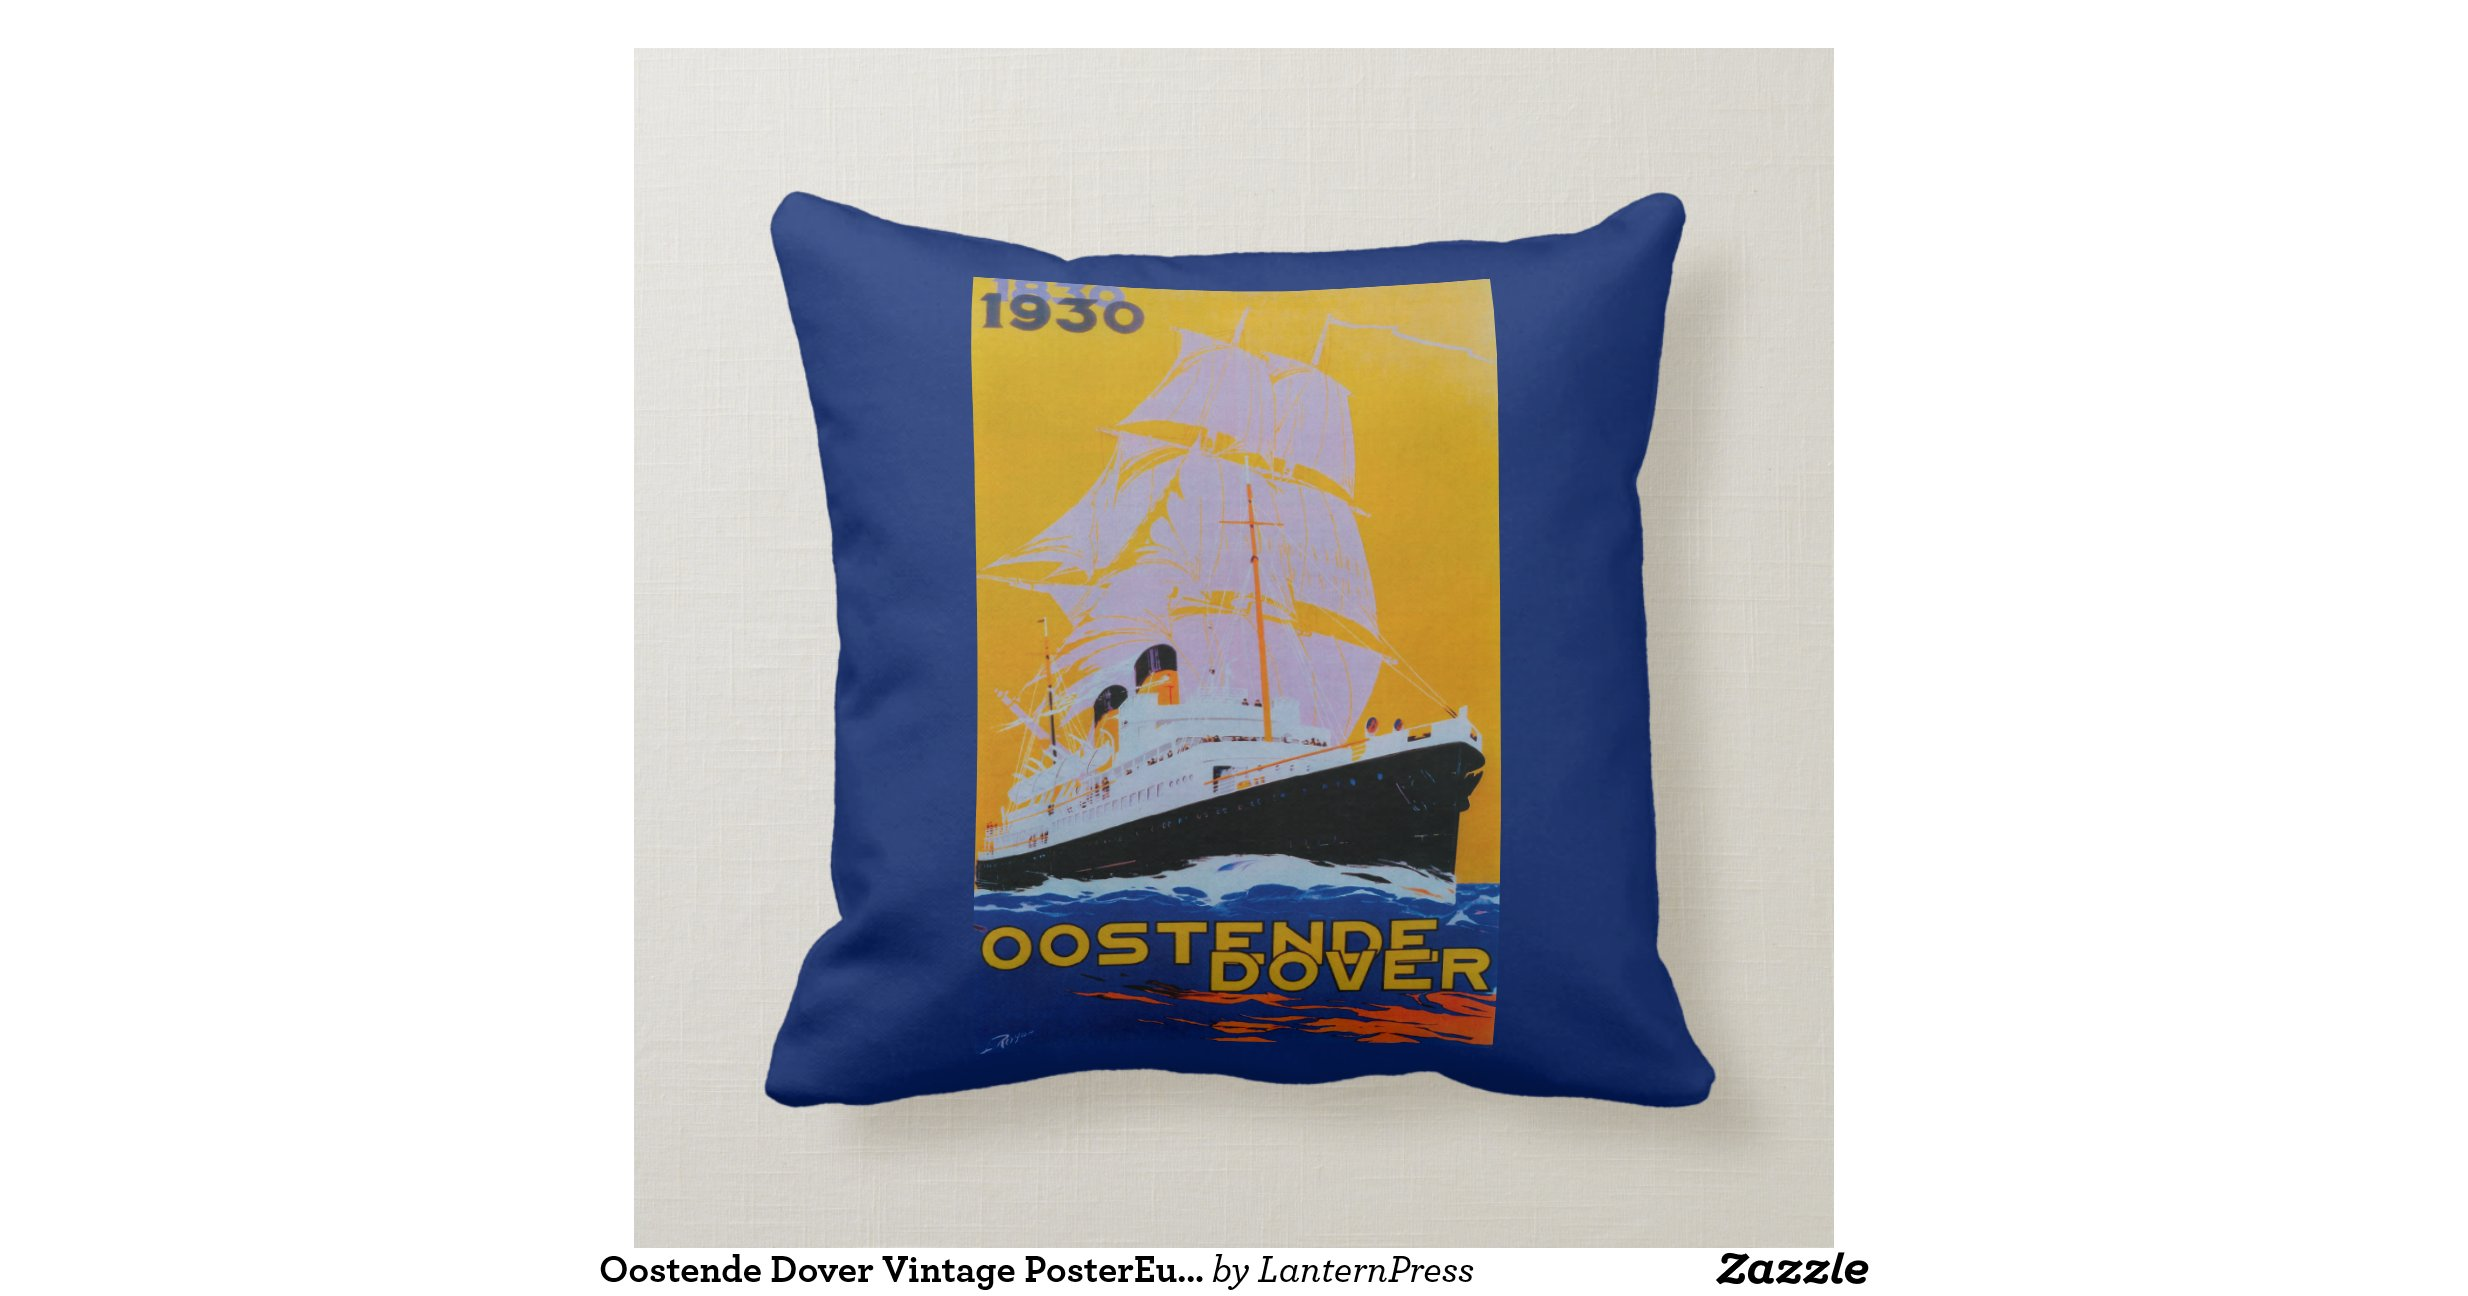 Oostende Dover Vintage Postereurope Throw Pillow Zazzle